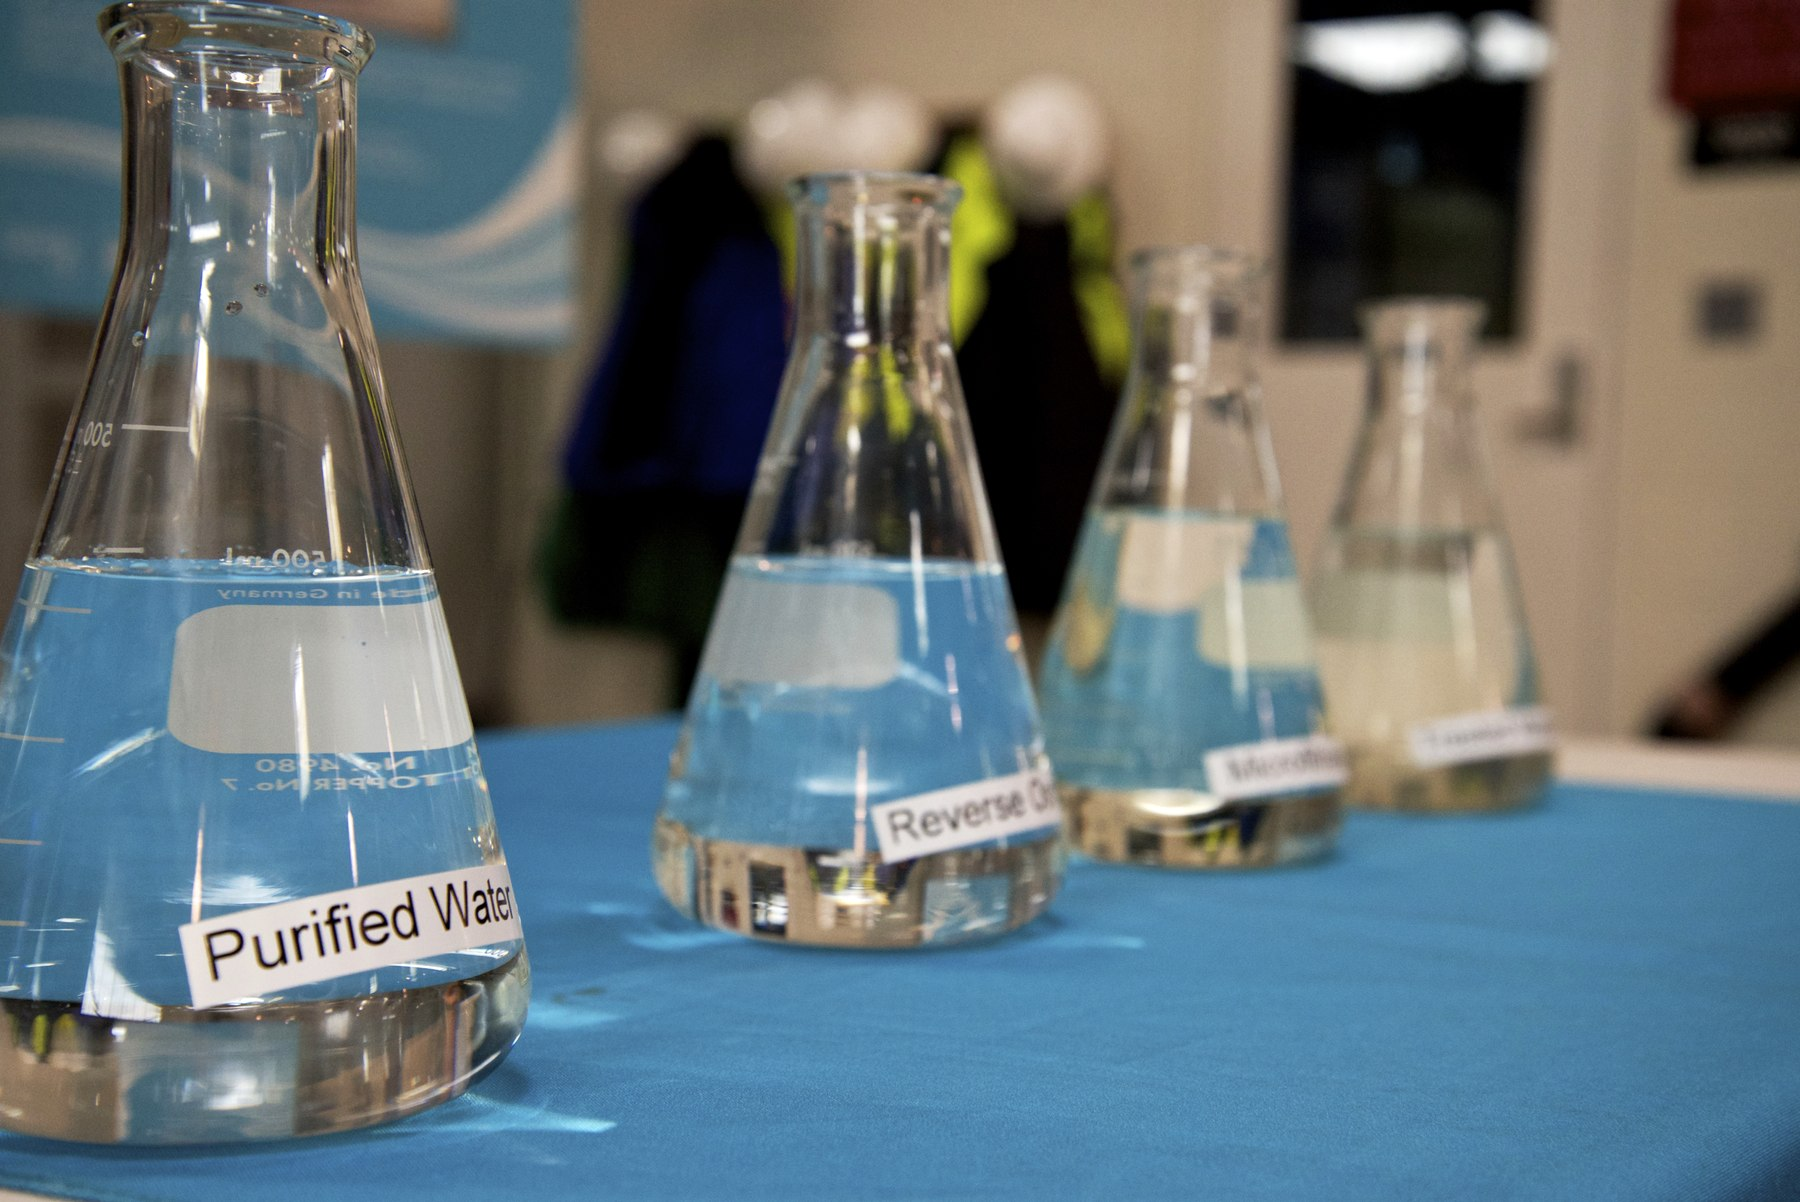 Samples of the water purification process at the Silicon Valley Advanced Water Purification Center in San Jose.